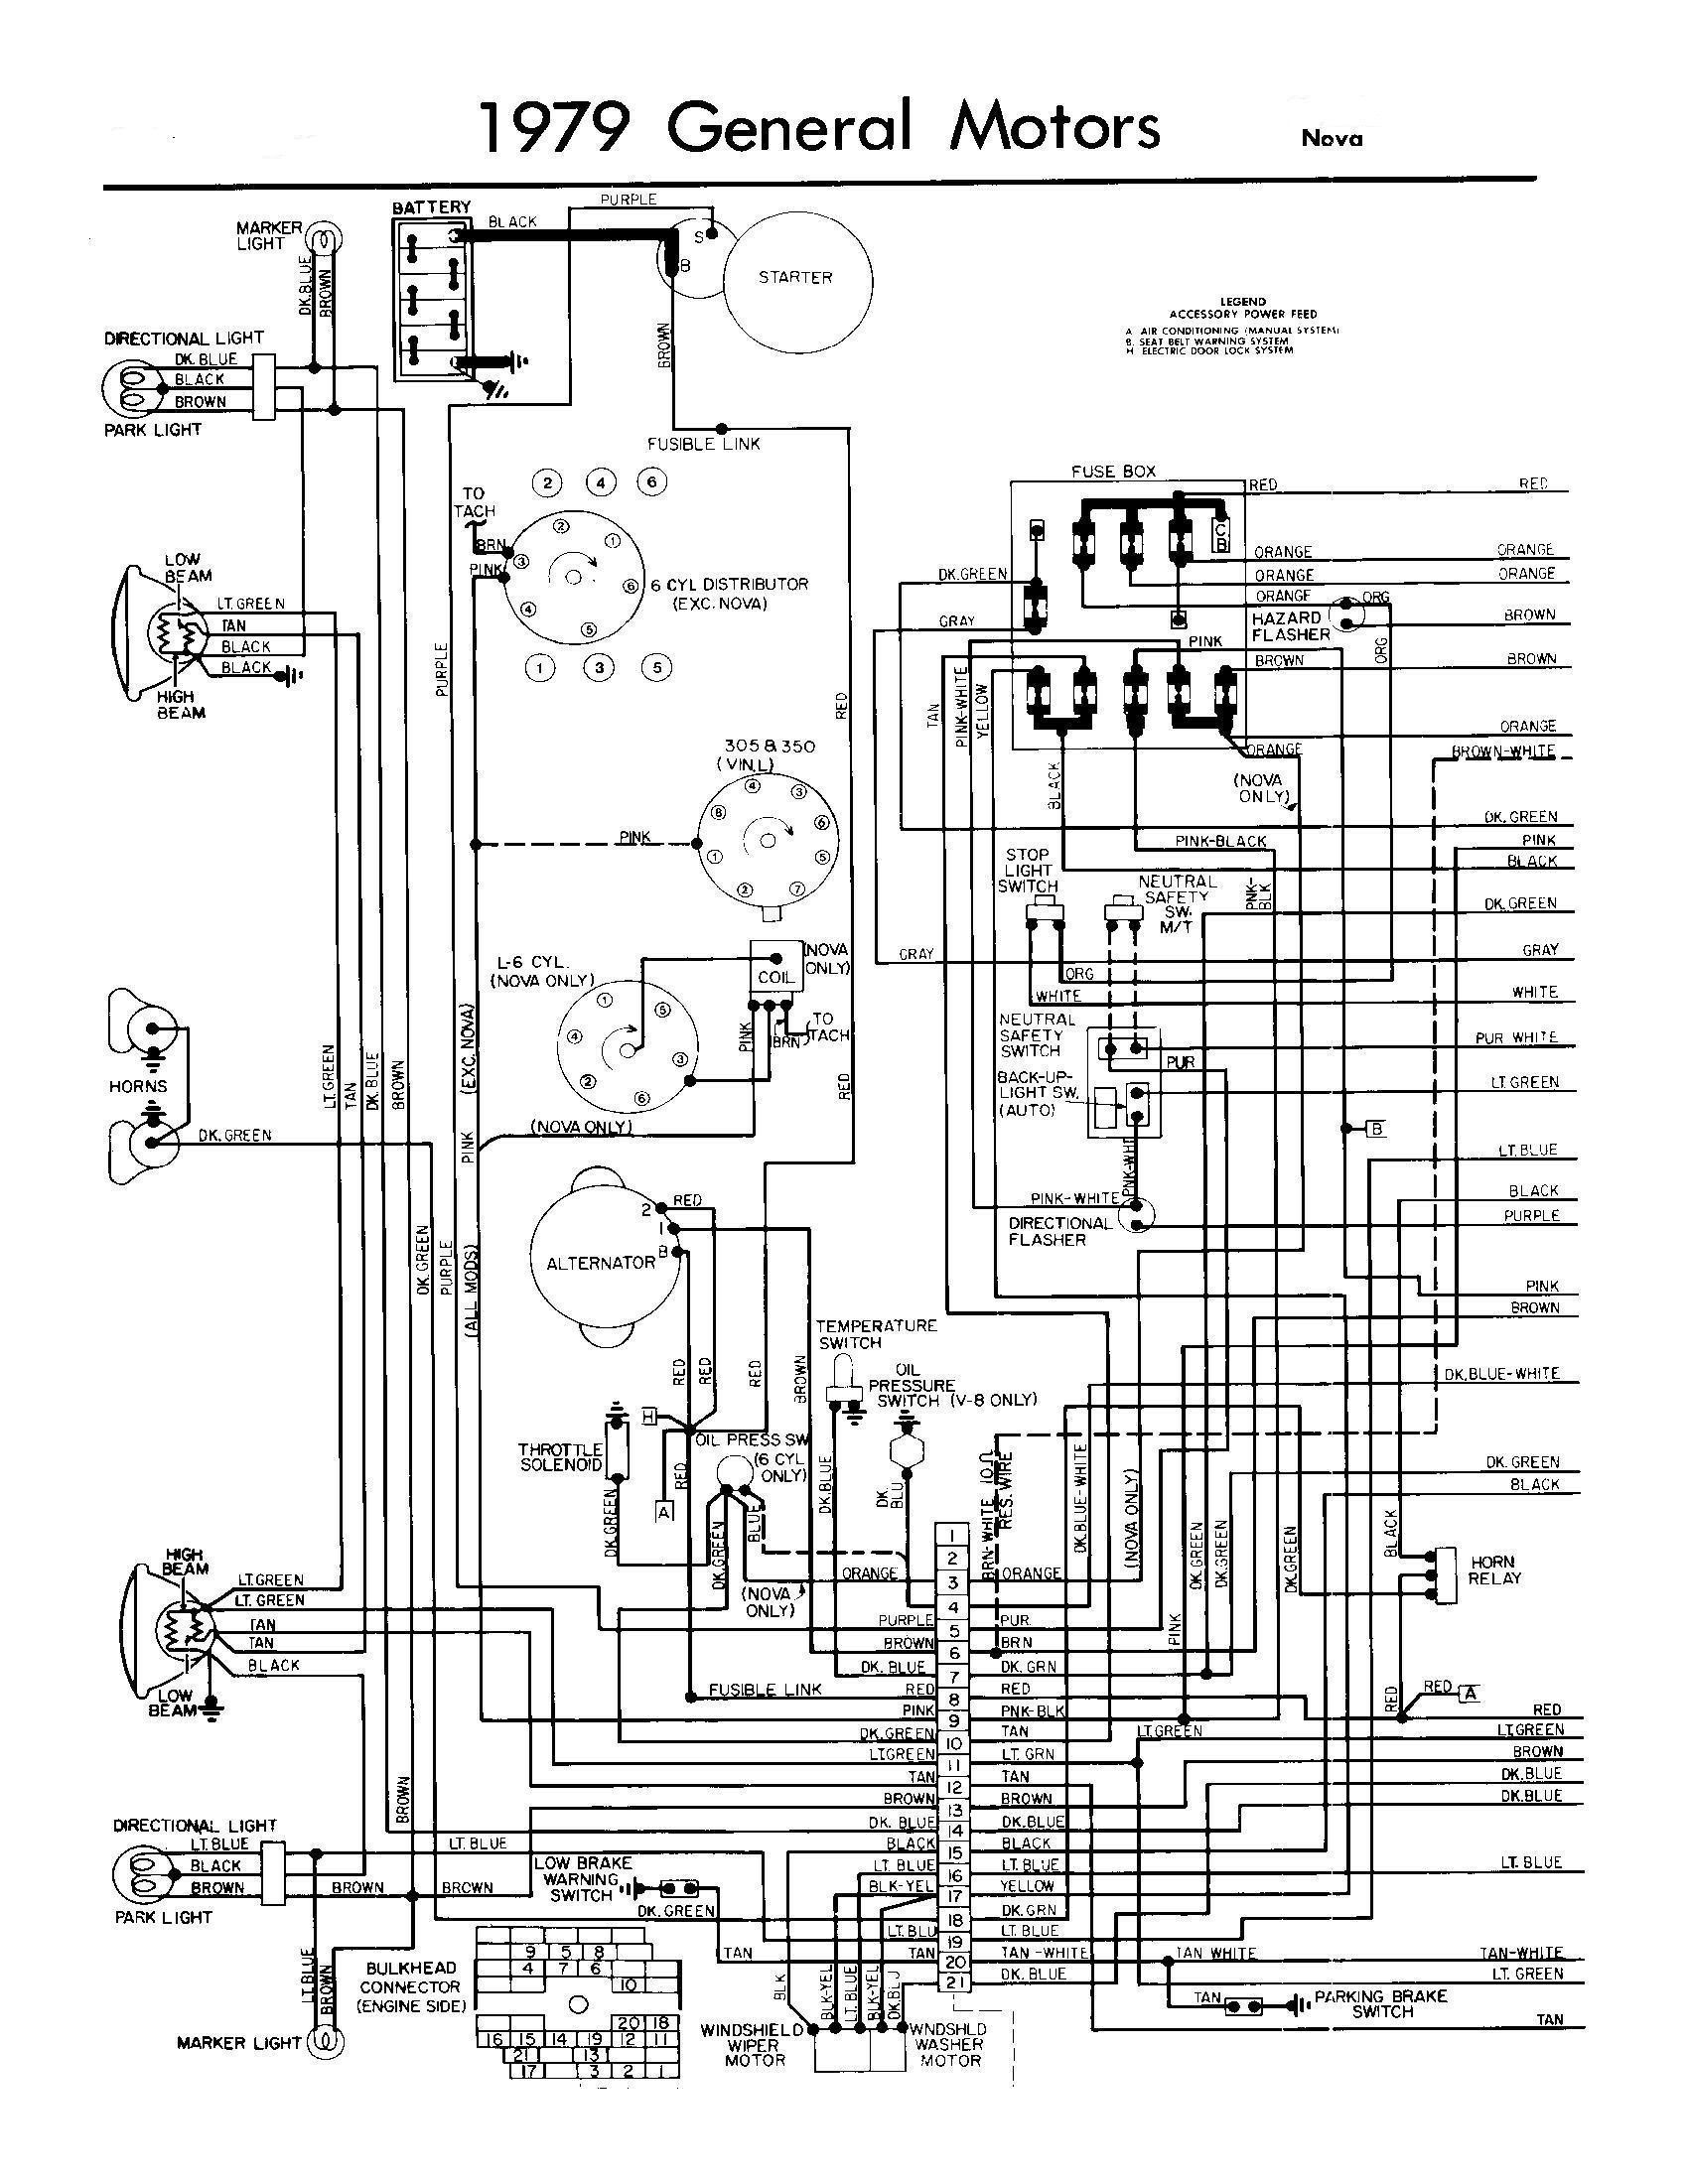 Wiring Diagram 1985 Chevy P30 Van - chevy.yamaha-mio ...  Diagram Source